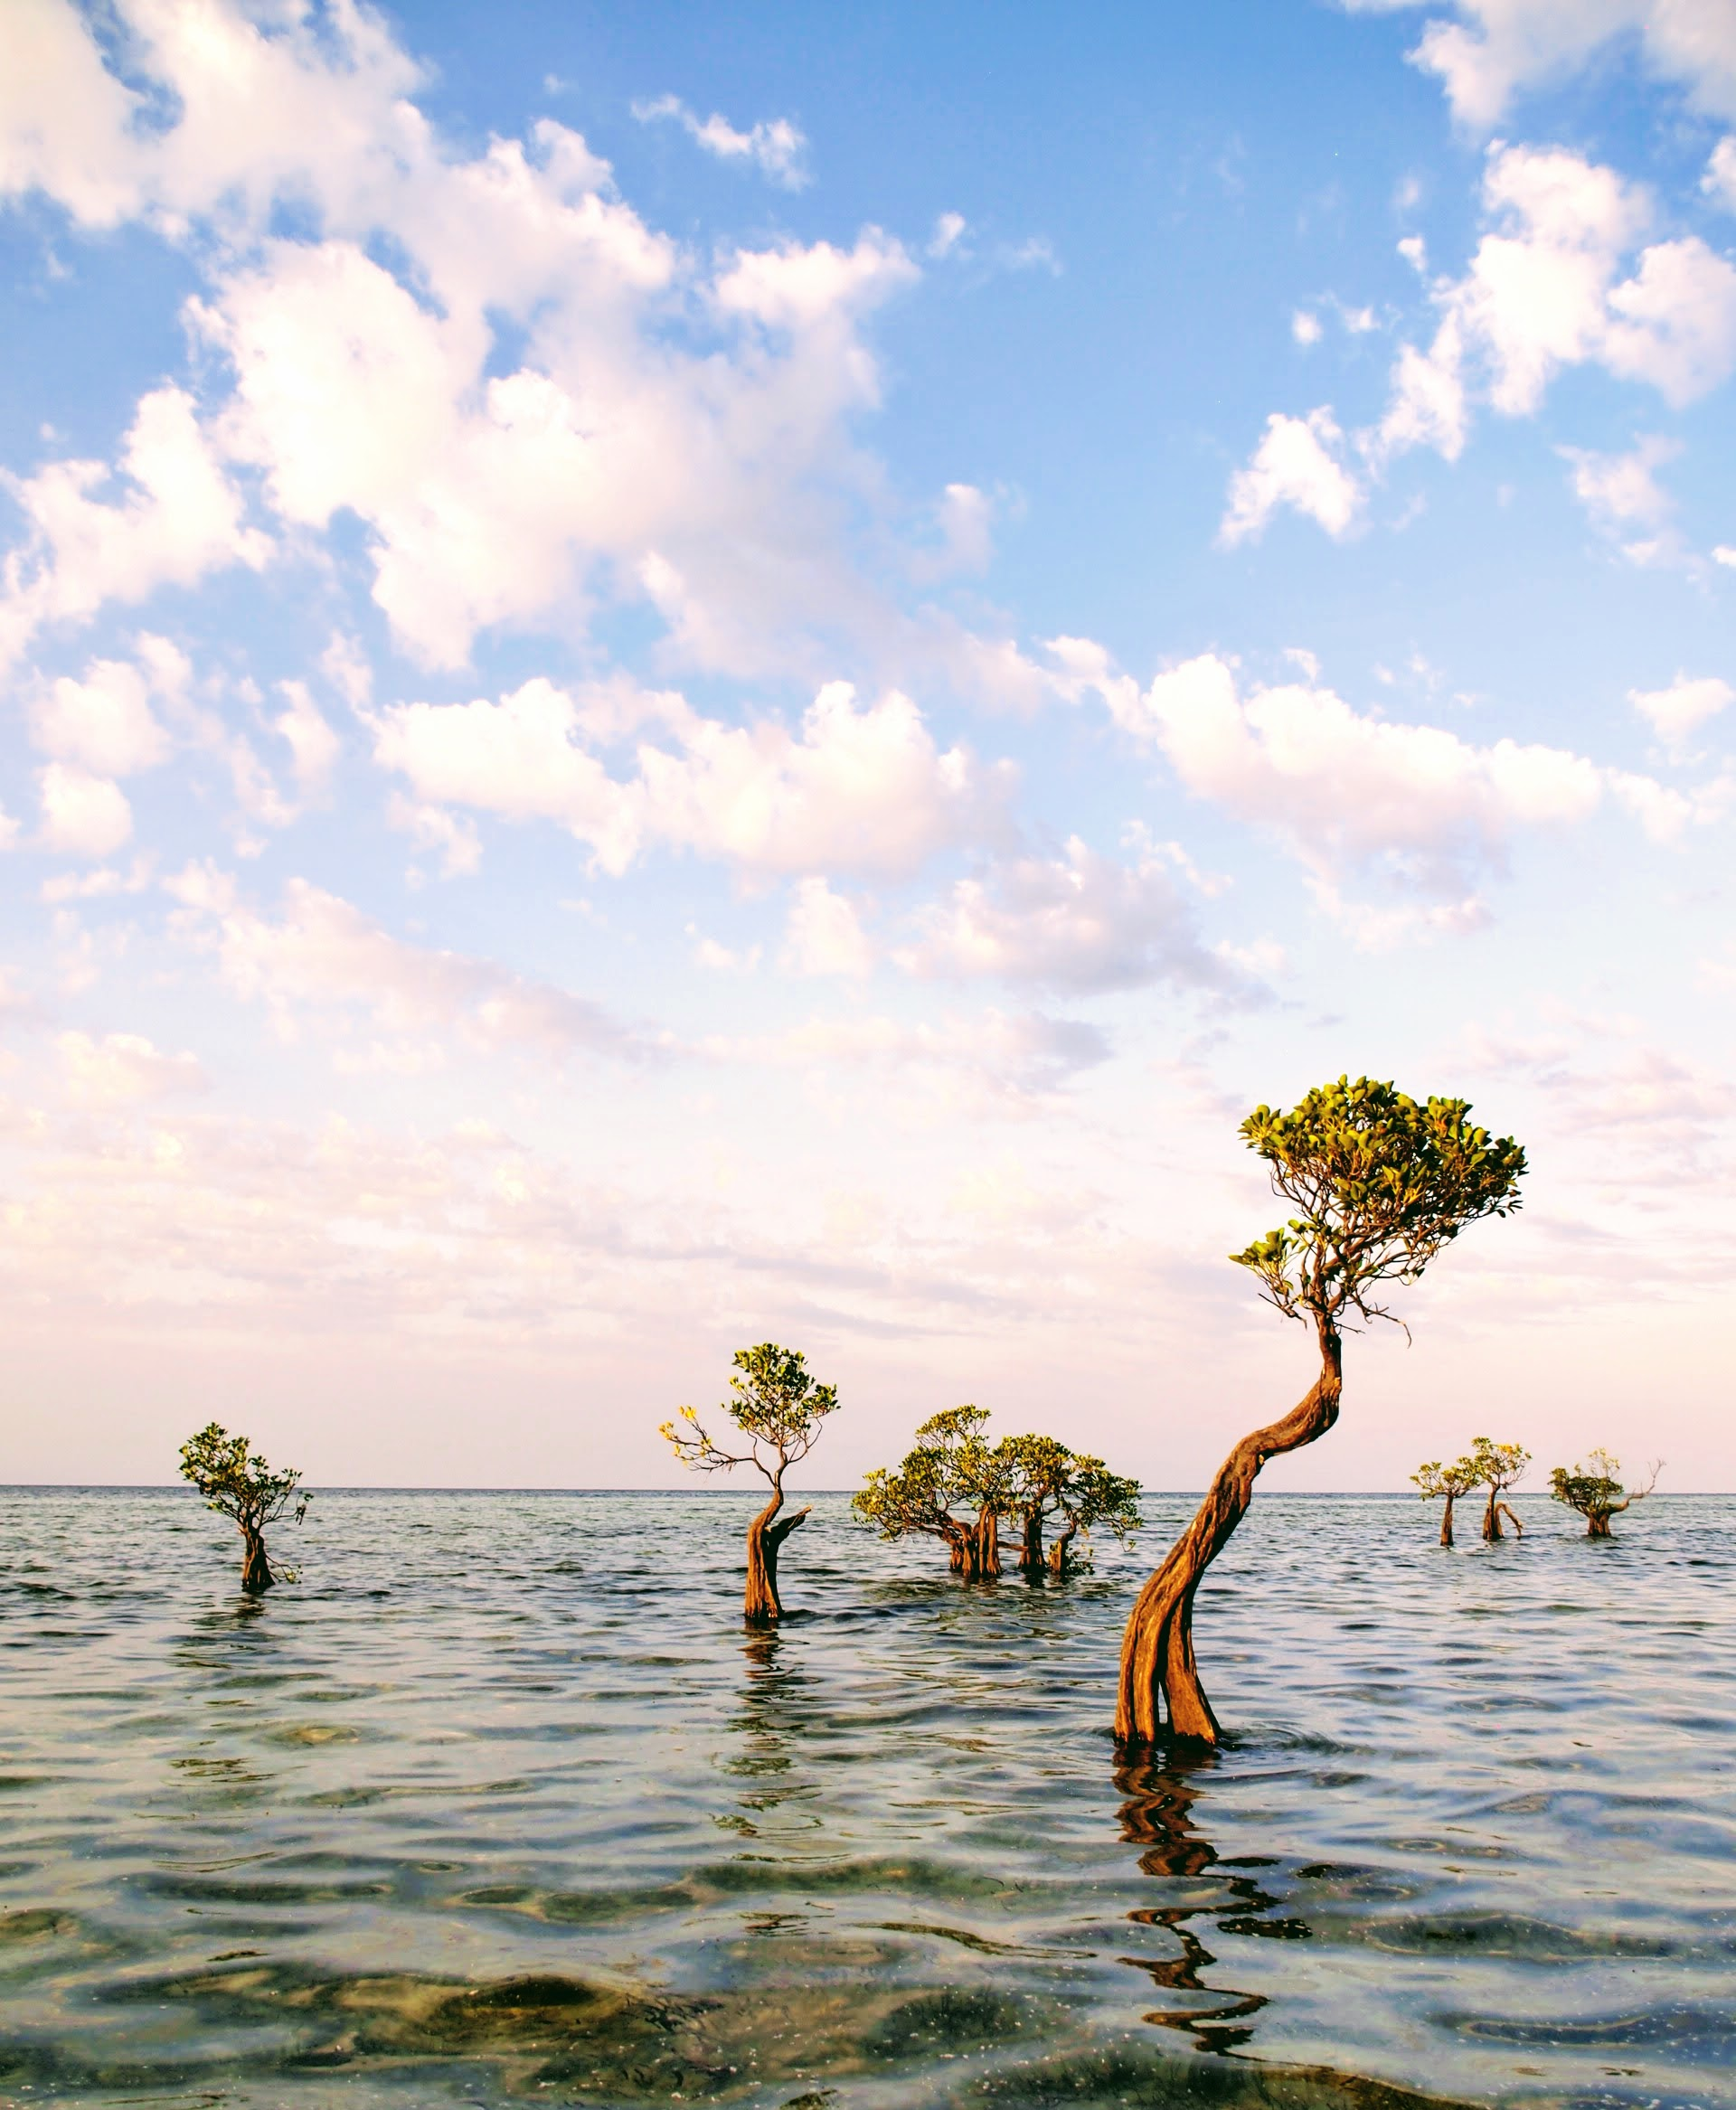 Dancing mangroves at Walakiri Beach